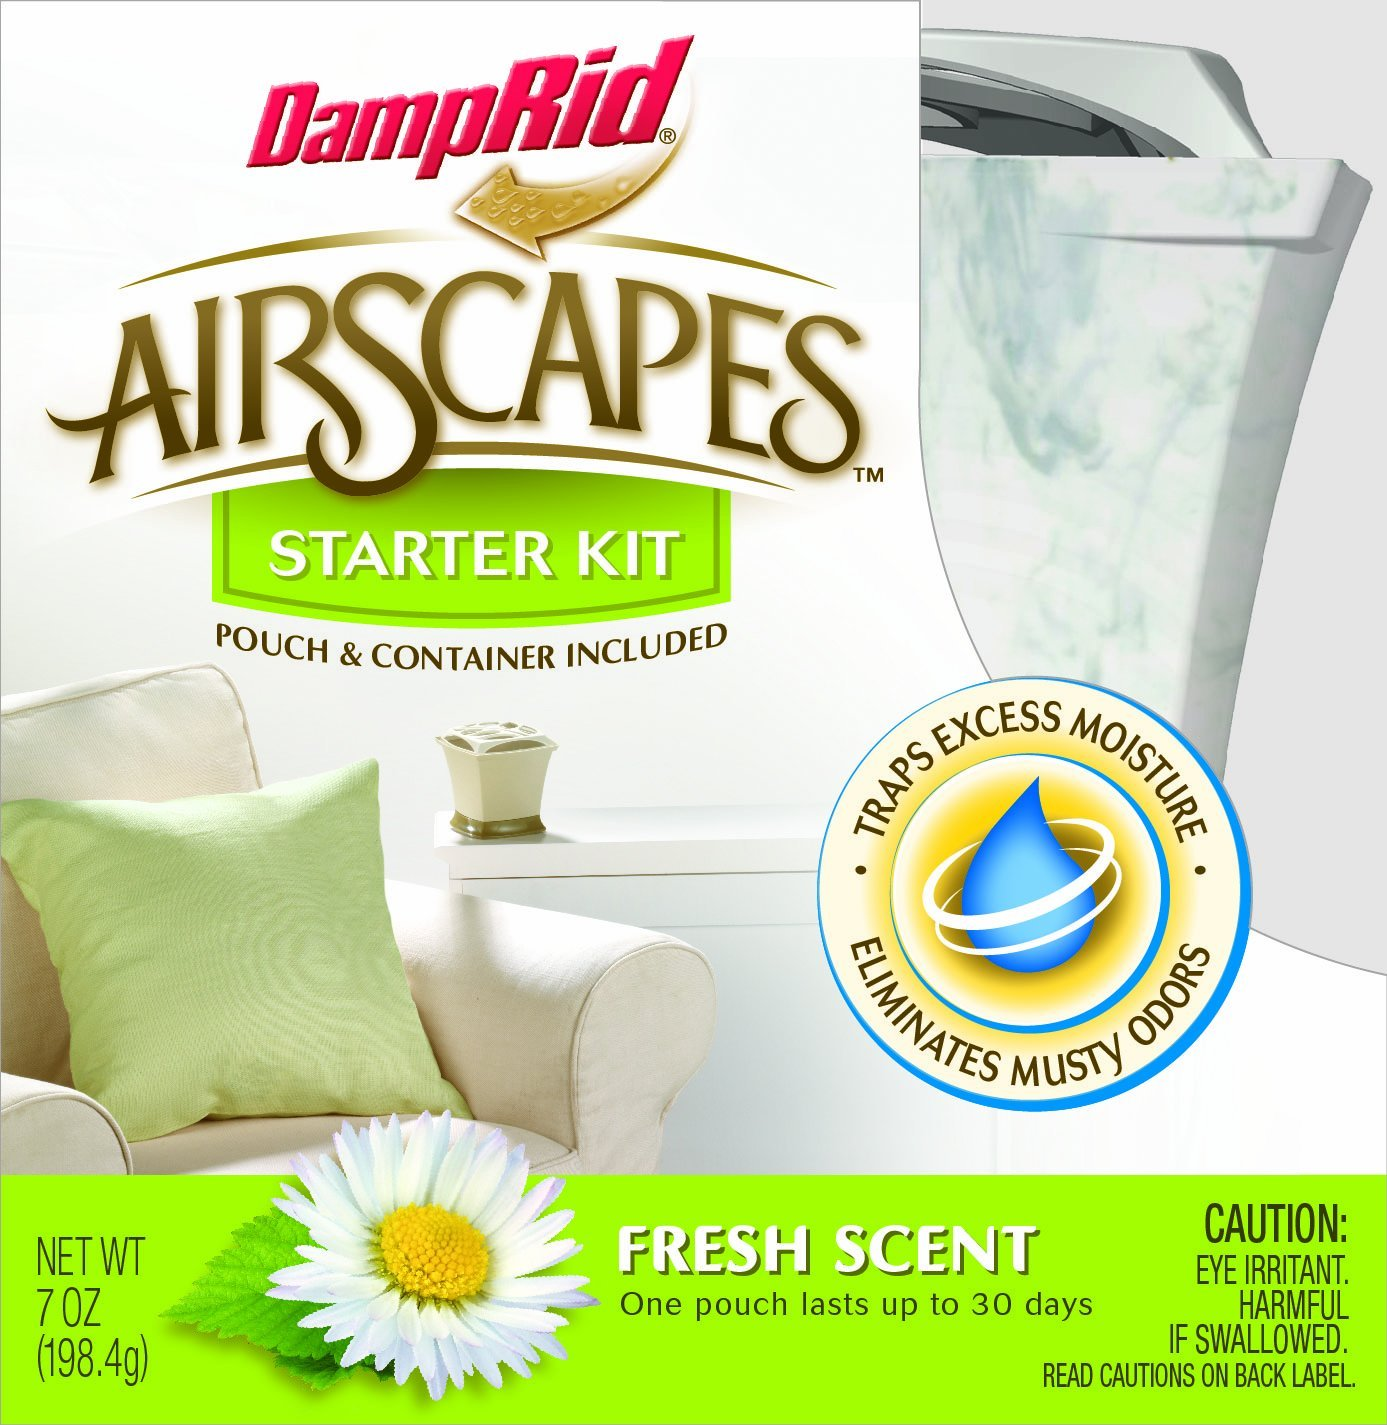 AS01WMFS Airscapes Dehumidifier Starter Kit, Fresh Scent, Traps excess moisture to eliminate musty odors for fresher cleaner air By DampRid